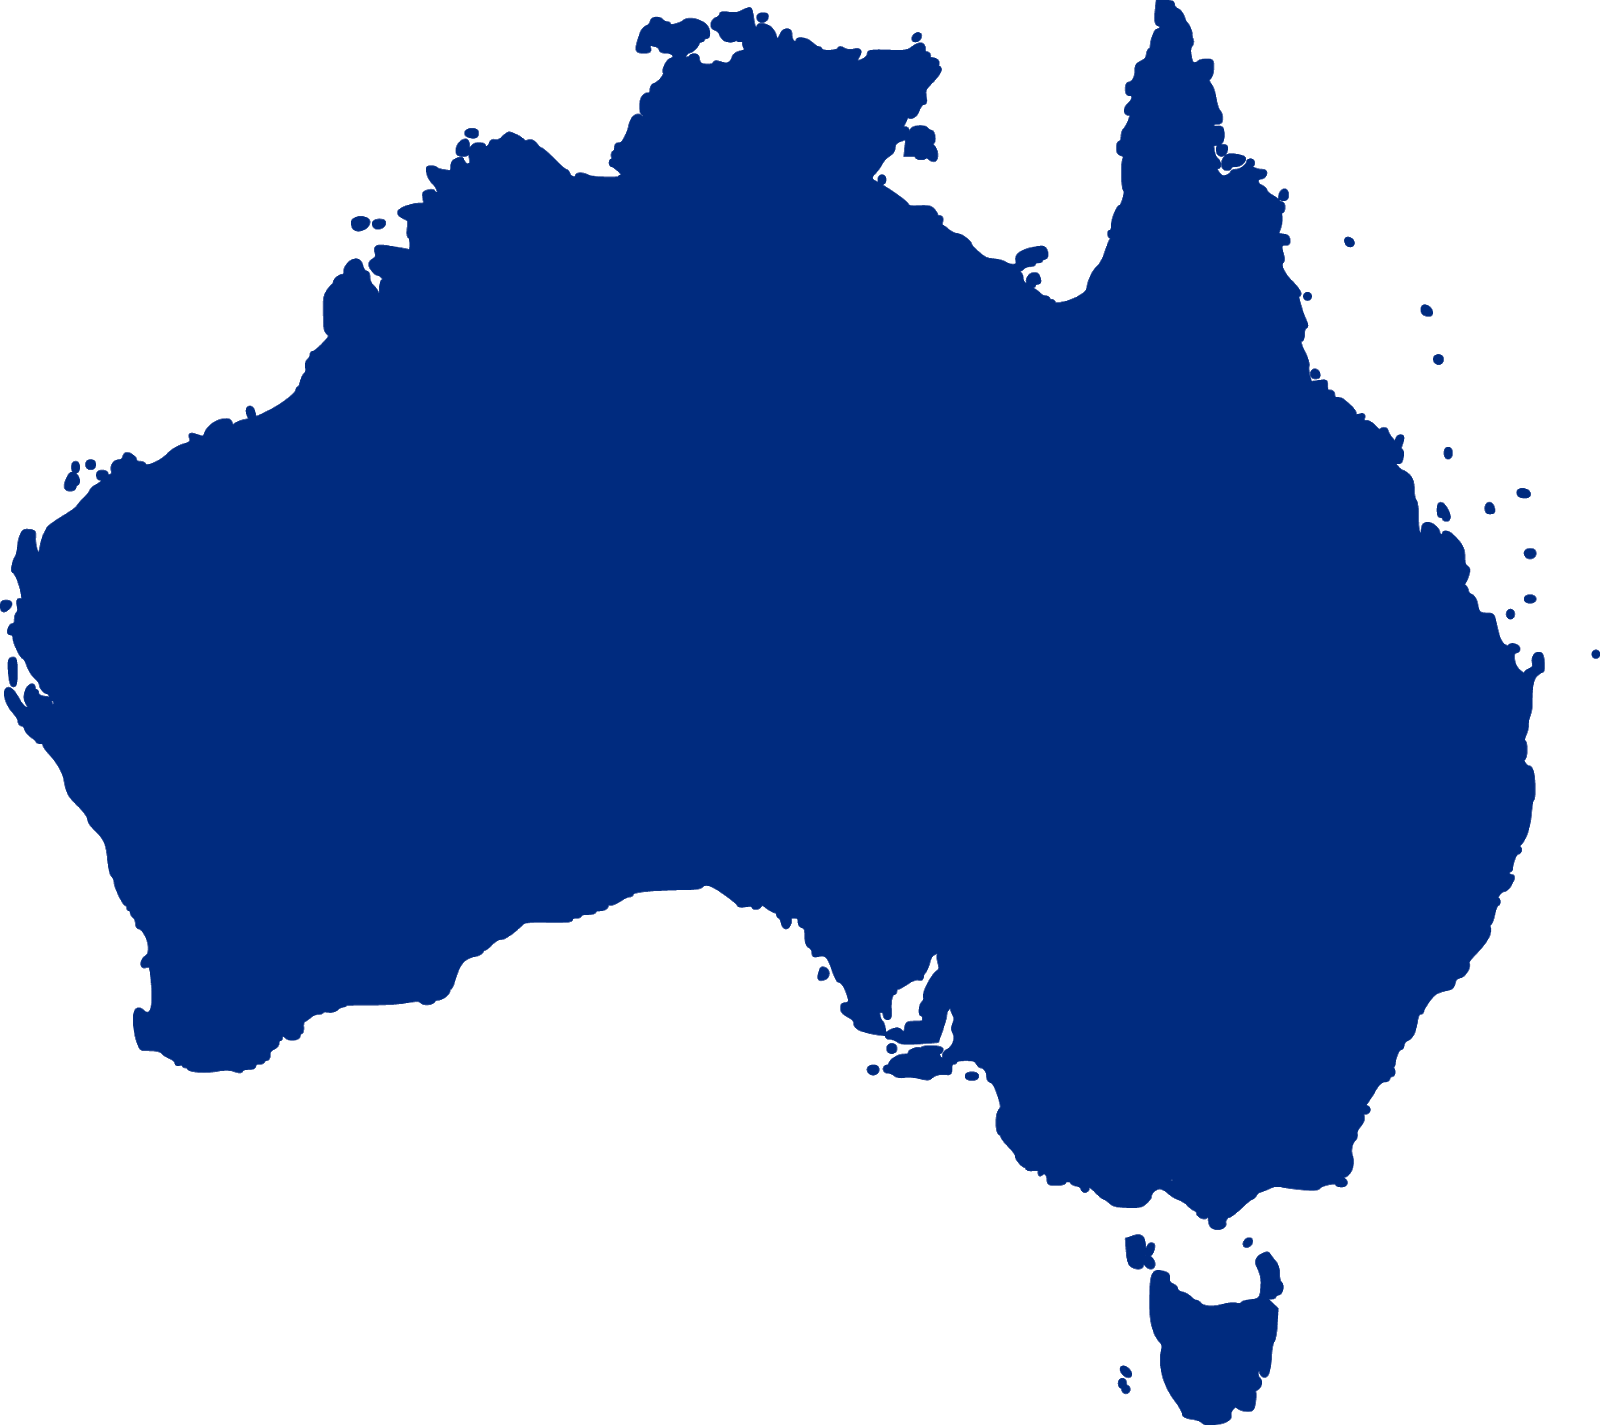 Australia Map Vector Ai.Download Icon Map Australia Vector Svg Eps Png Psd Ai El Fonts Vectors